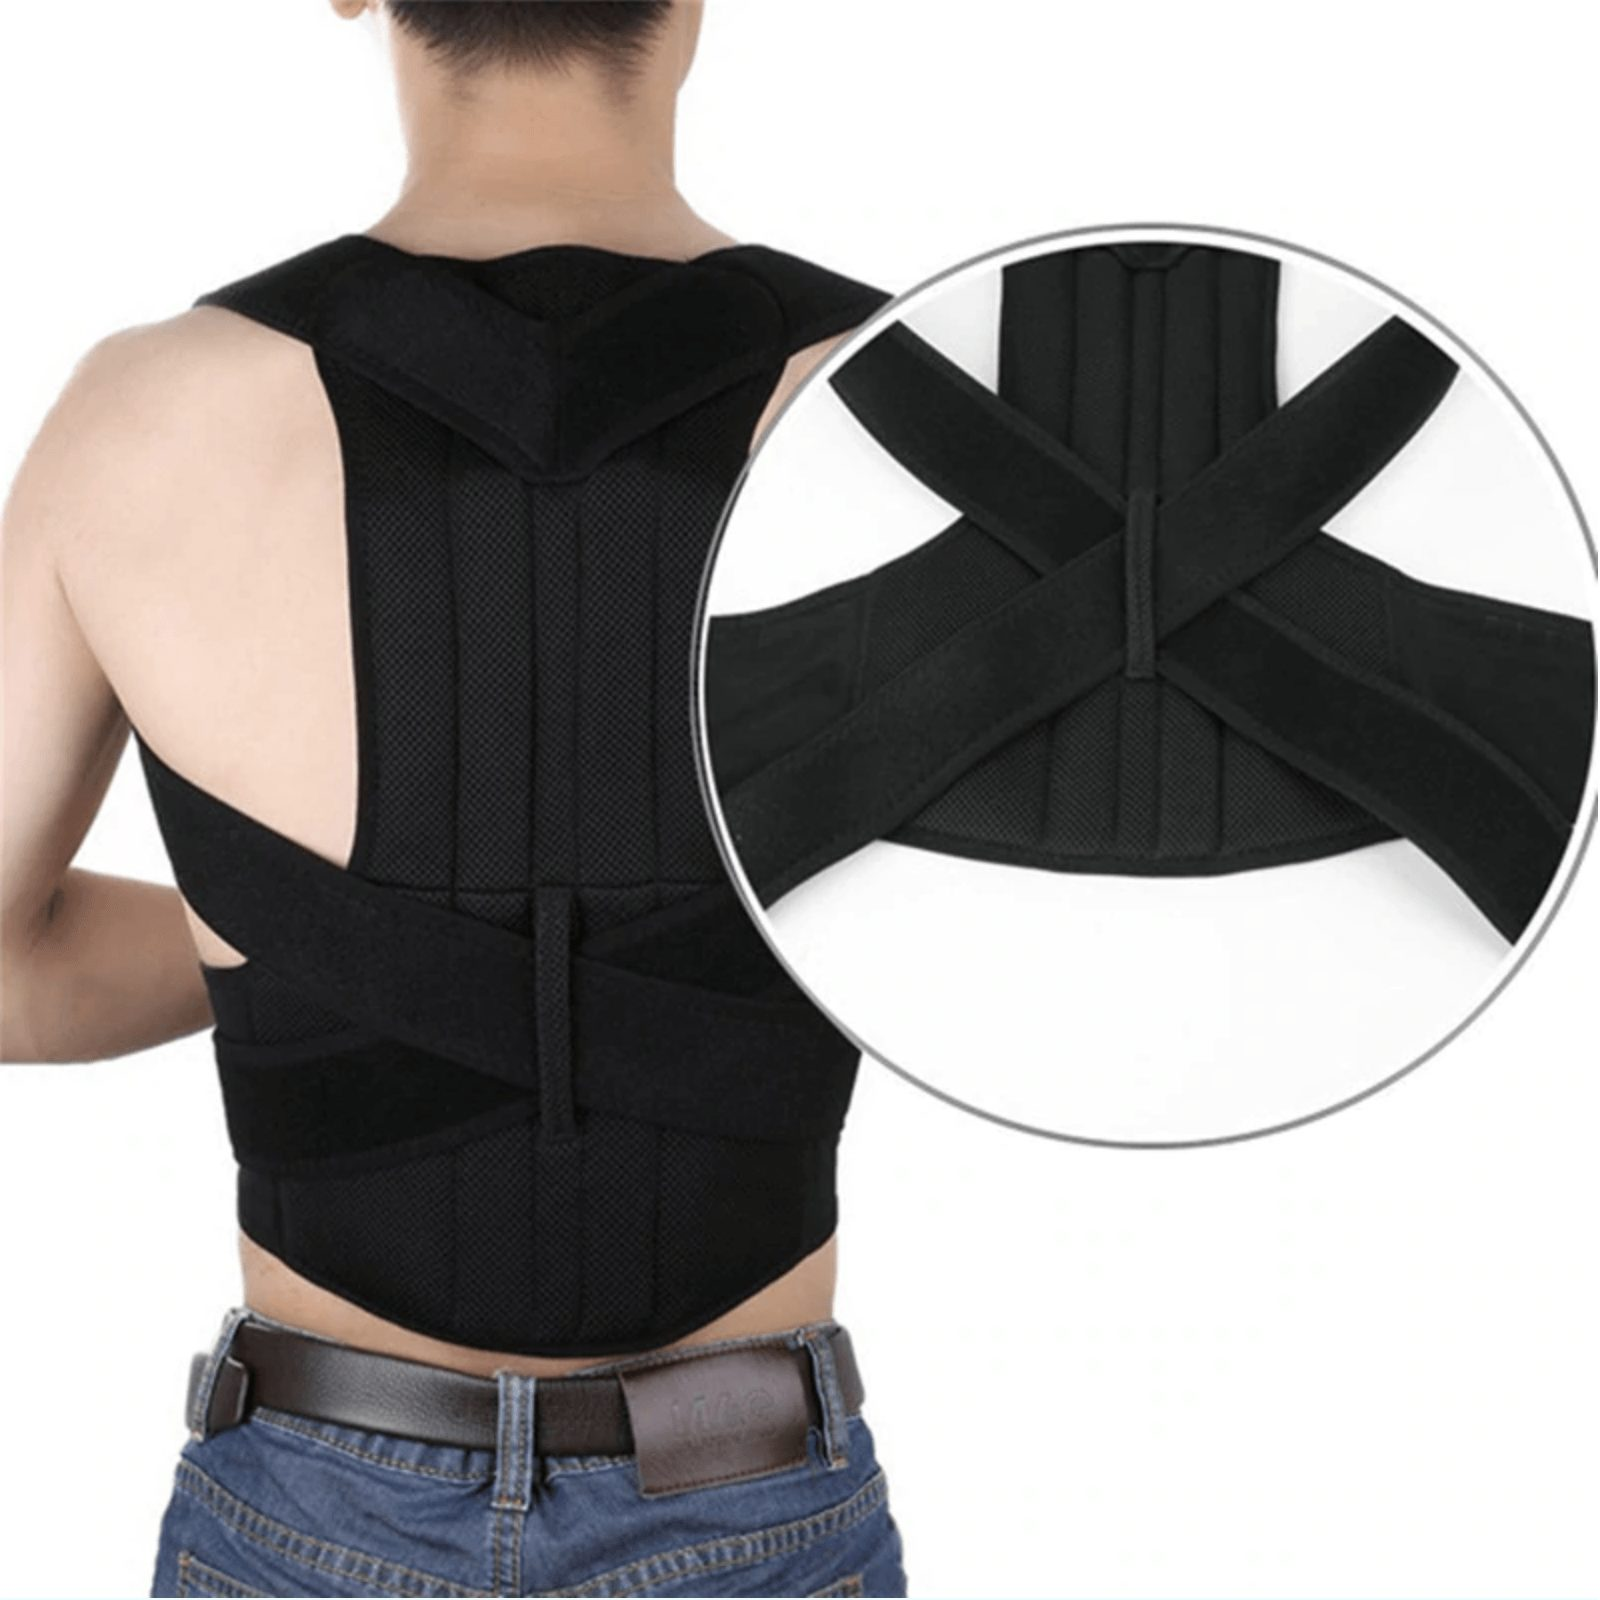 posture corrector better posture less back pain scoliosis